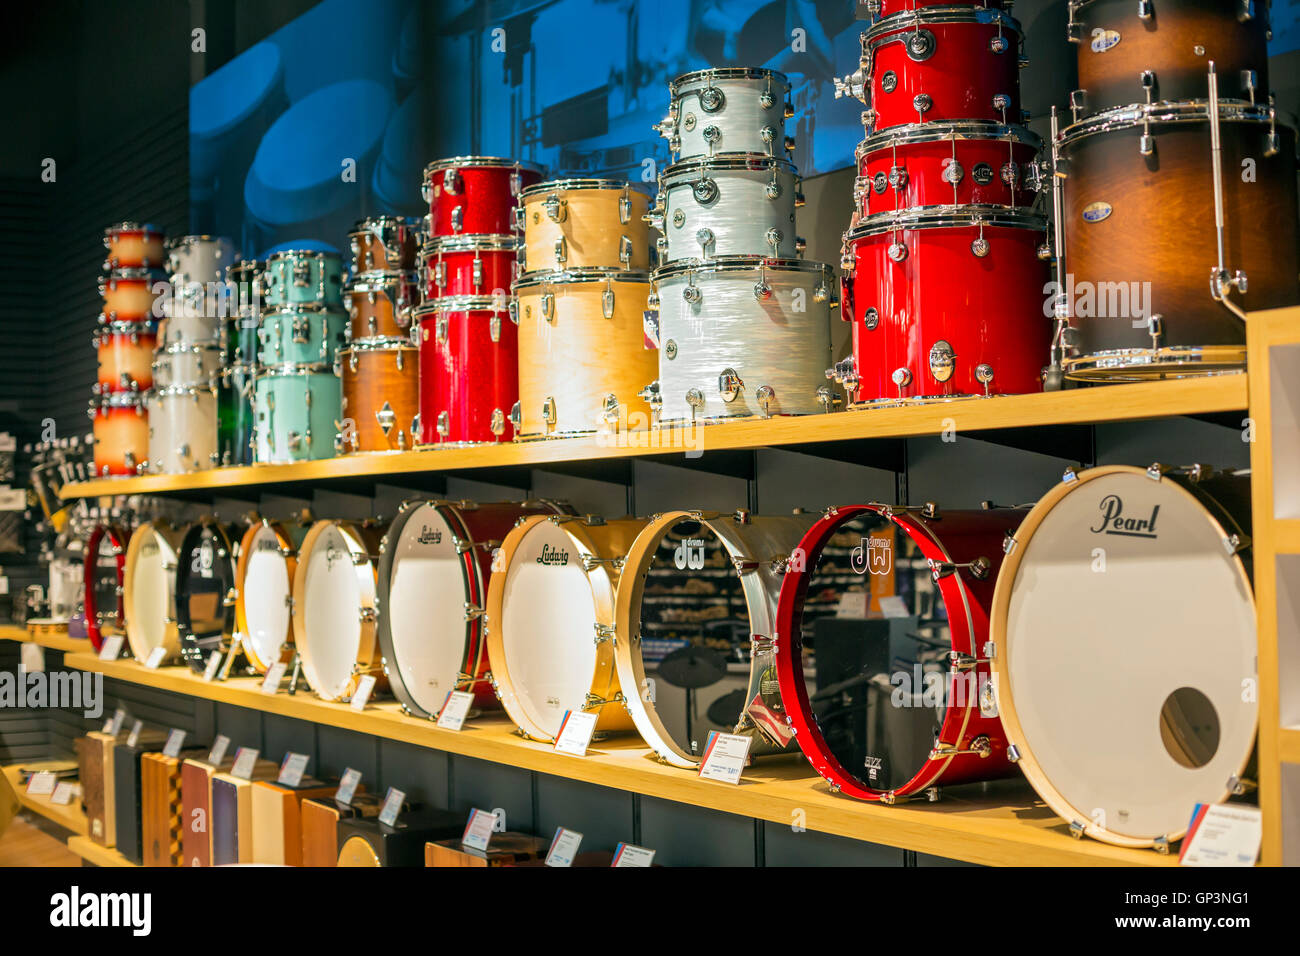 Fort Wayne, Indiana - Drums on display at the Sweetwater ...